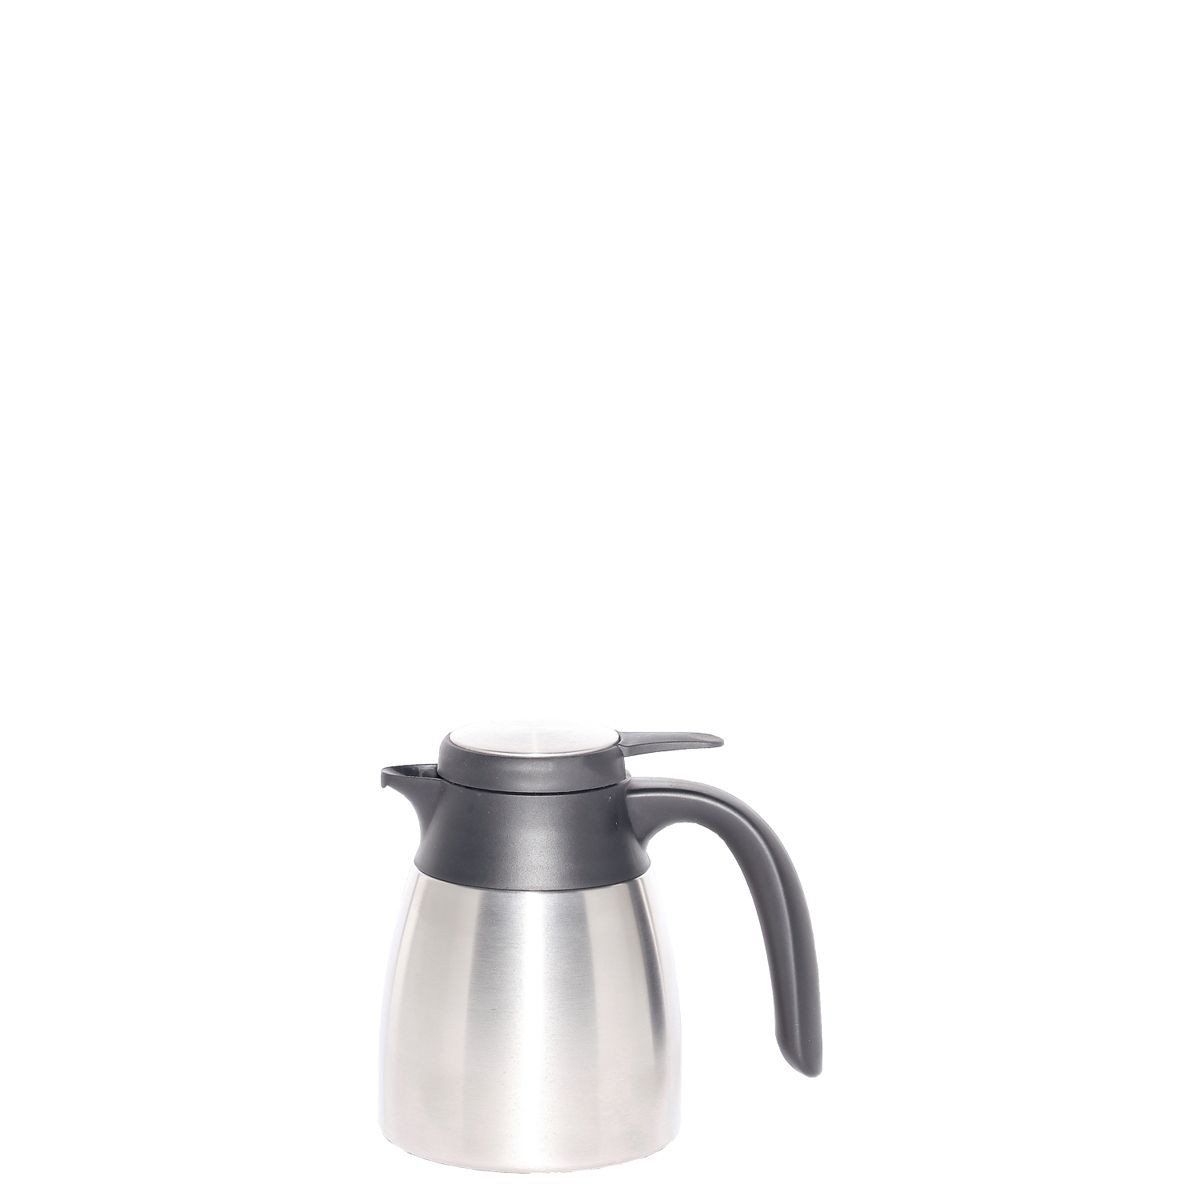 Service Ideas FCC06SS Stainless Steel Creamer, .6 Liter